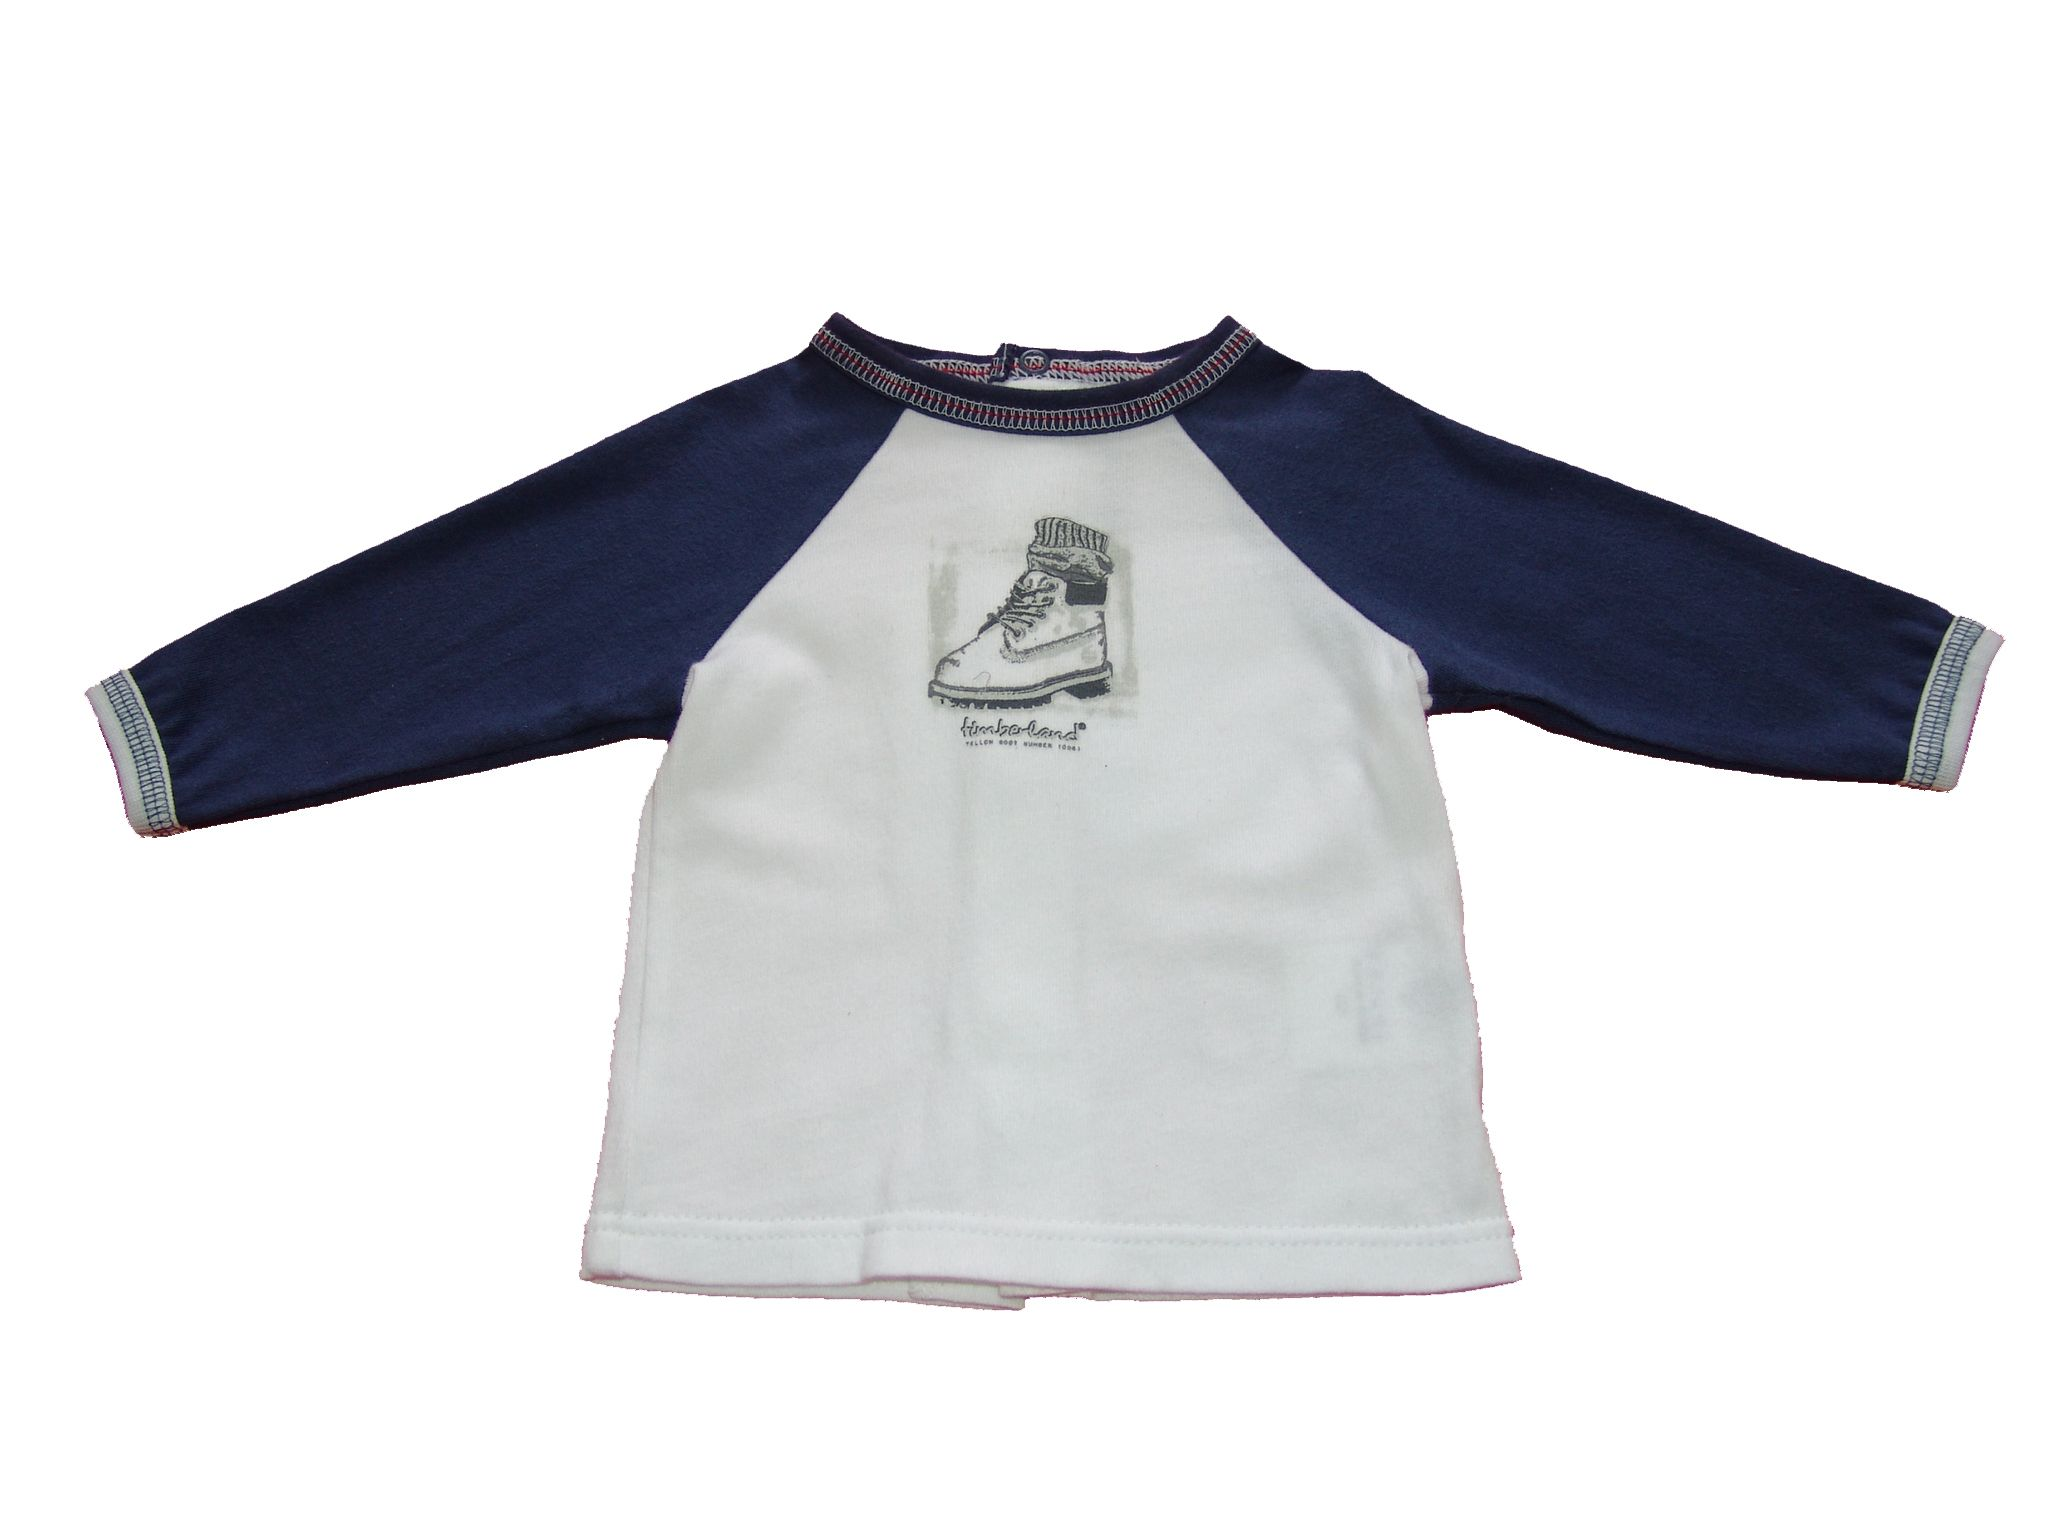 Timberland Long sleeved T-shirt with print front Navy product image